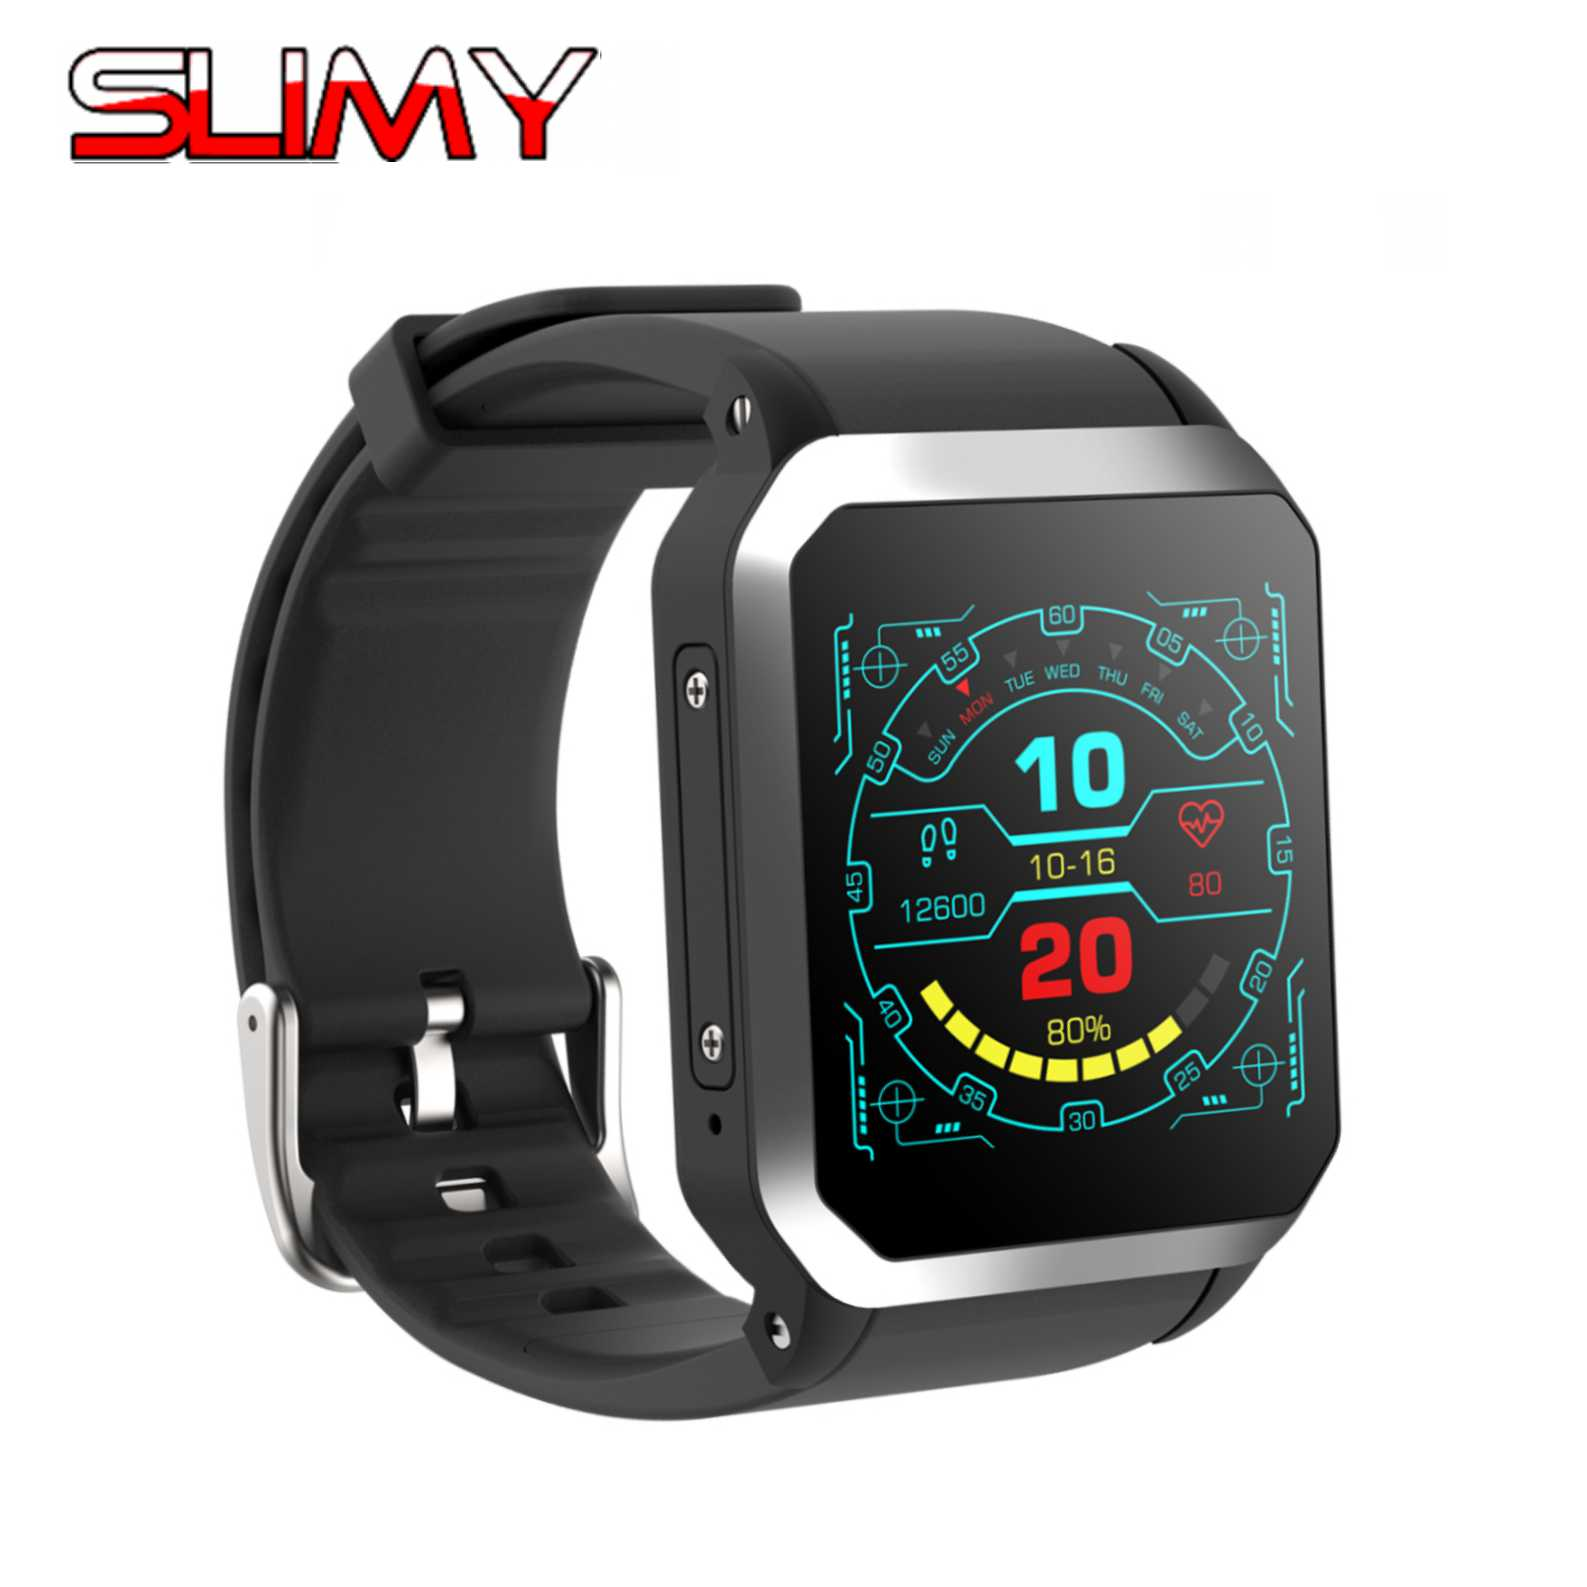 Slimy 3G Wifi Smart Watch Android 5.1 8G Wrist Phone GPS SIM Card Heart Rate Monitor Smartwatch with IP68 Waterproof Camera potino d7 smart watch android 4 4 sim bluetooth 4 0 smartwatch 500mah gps wifi 3g heart rate monitor smart wearable devices